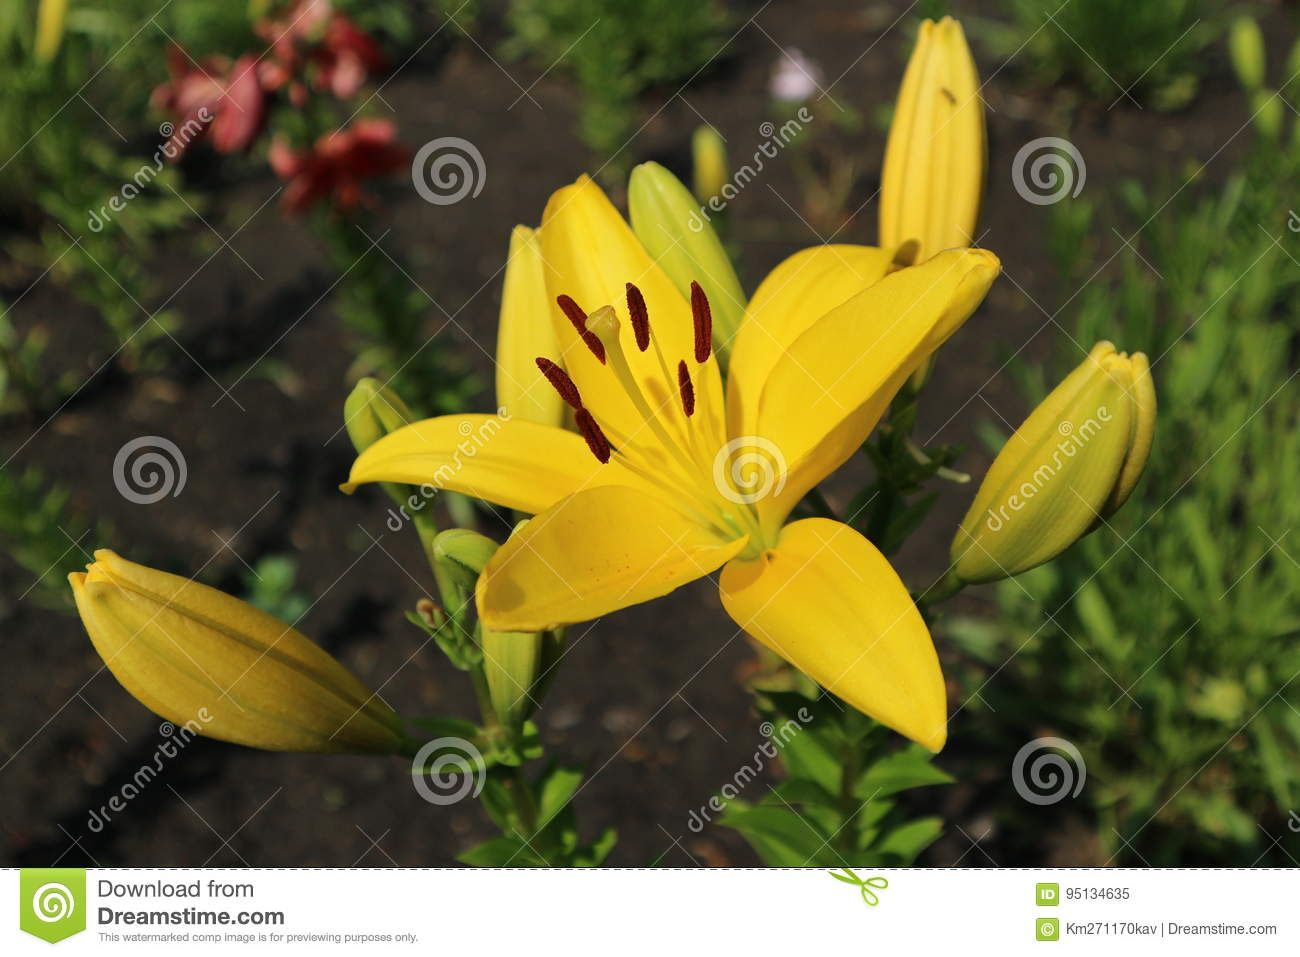 L A Hybrid Lilie Serrada Large Sunny Yellow Flower And Buds Stock Image Image Of Flower Large 95134635